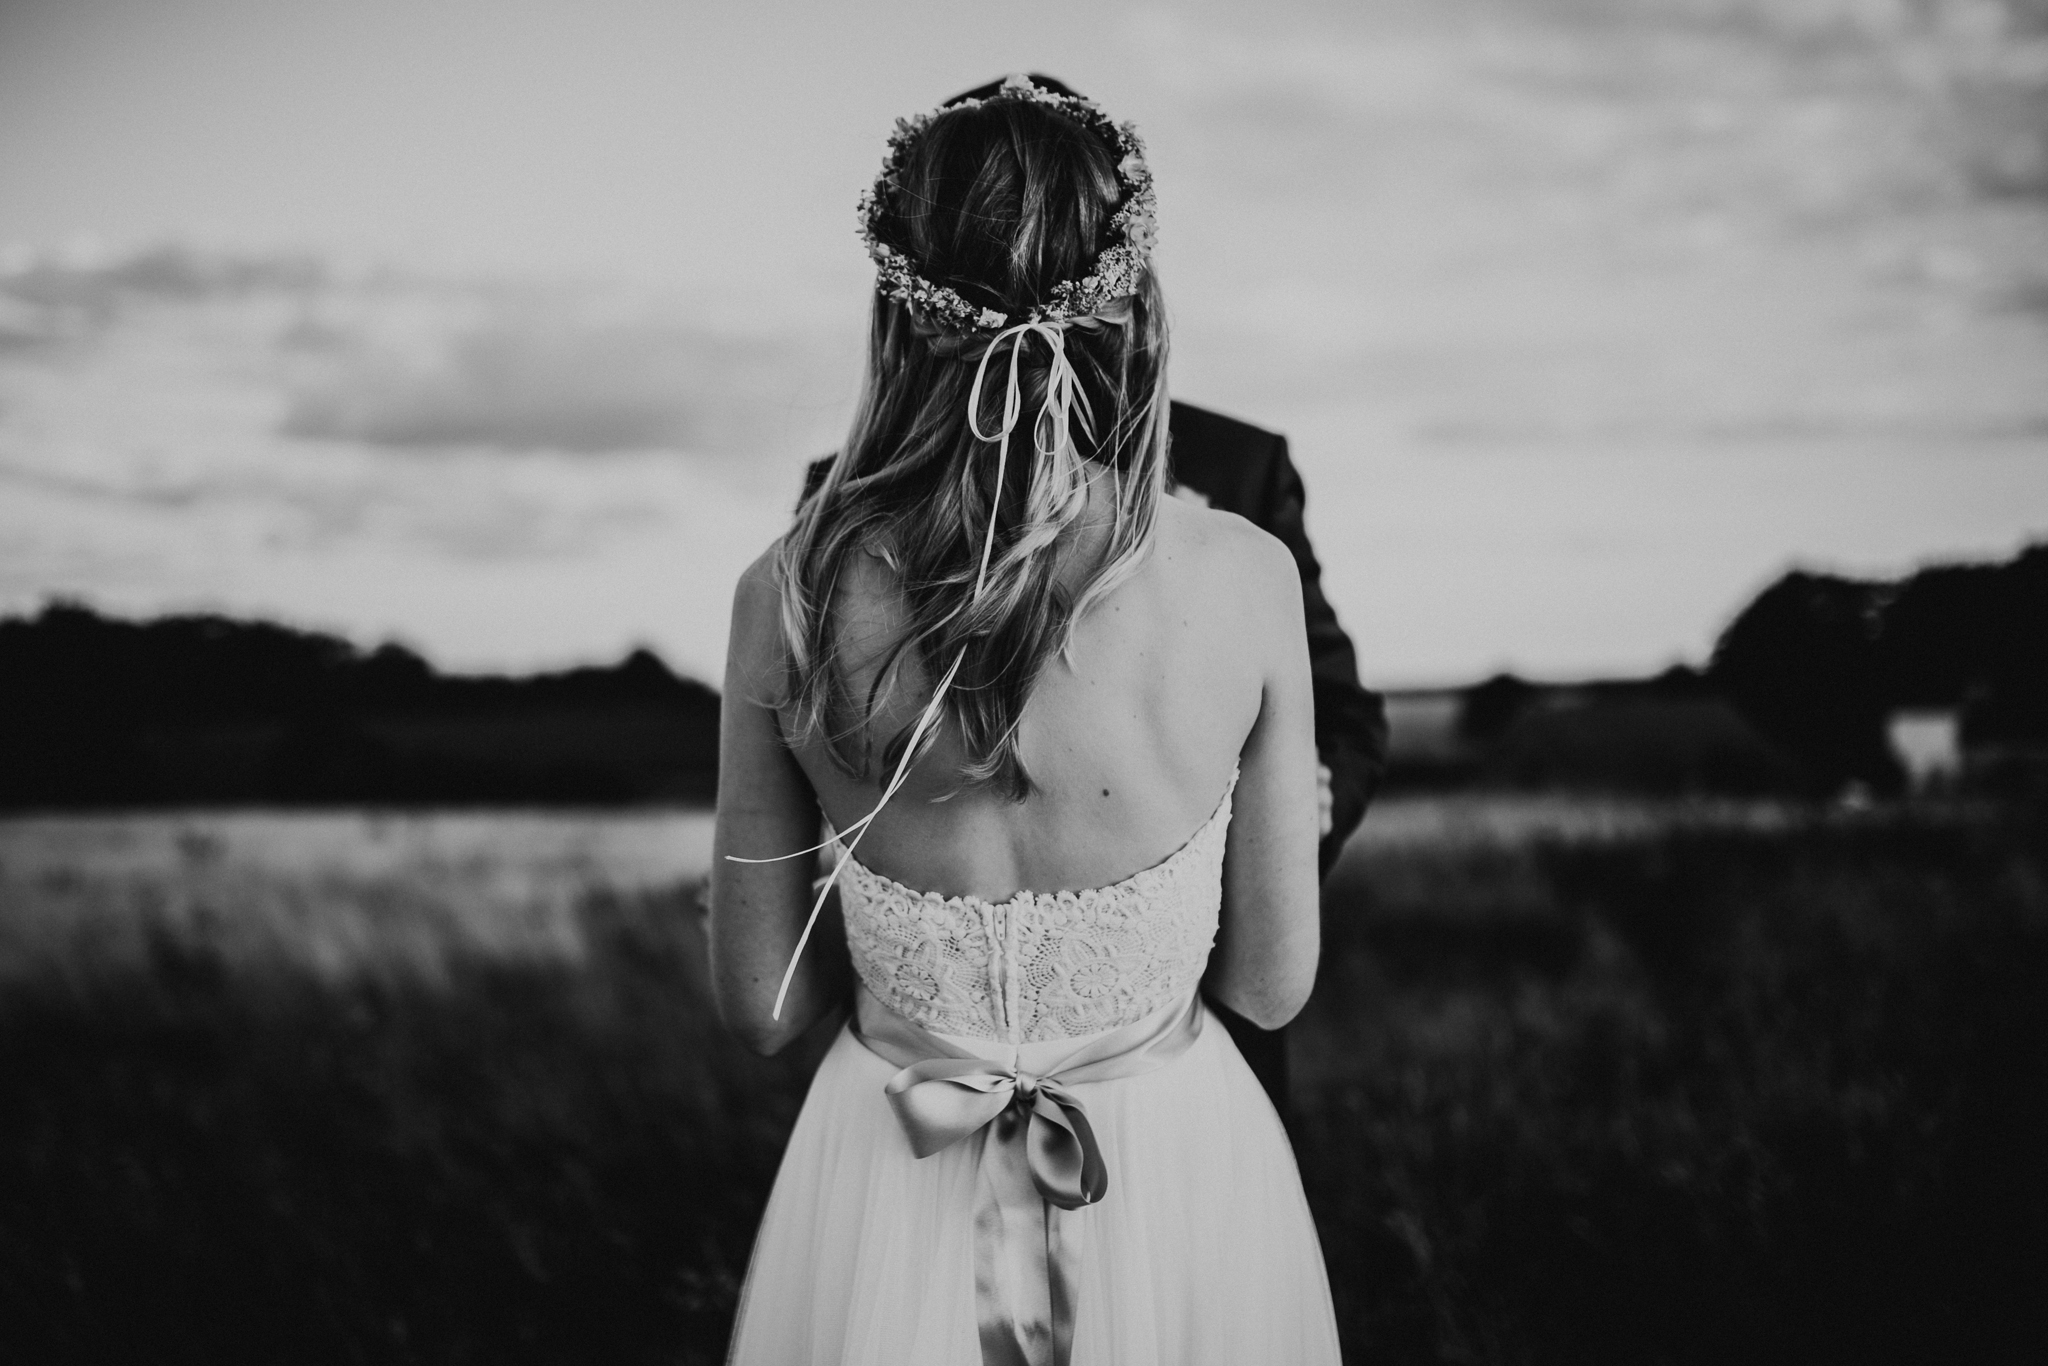 Hannah-Gerrard-Norfolk-Wedding-Back-to-the-Garden-Holt-Wells-Photography-Darina-Stoda-92.jpg